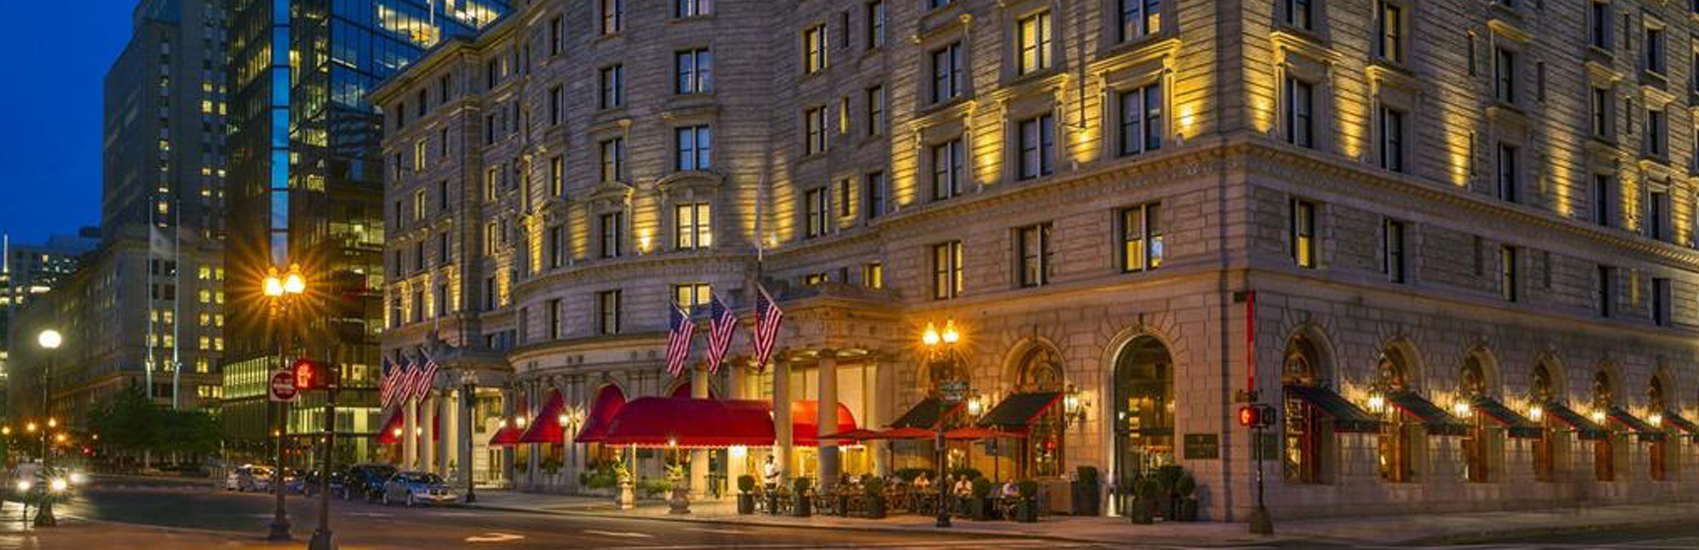 Virtuoso Hotels Throughout the US 0